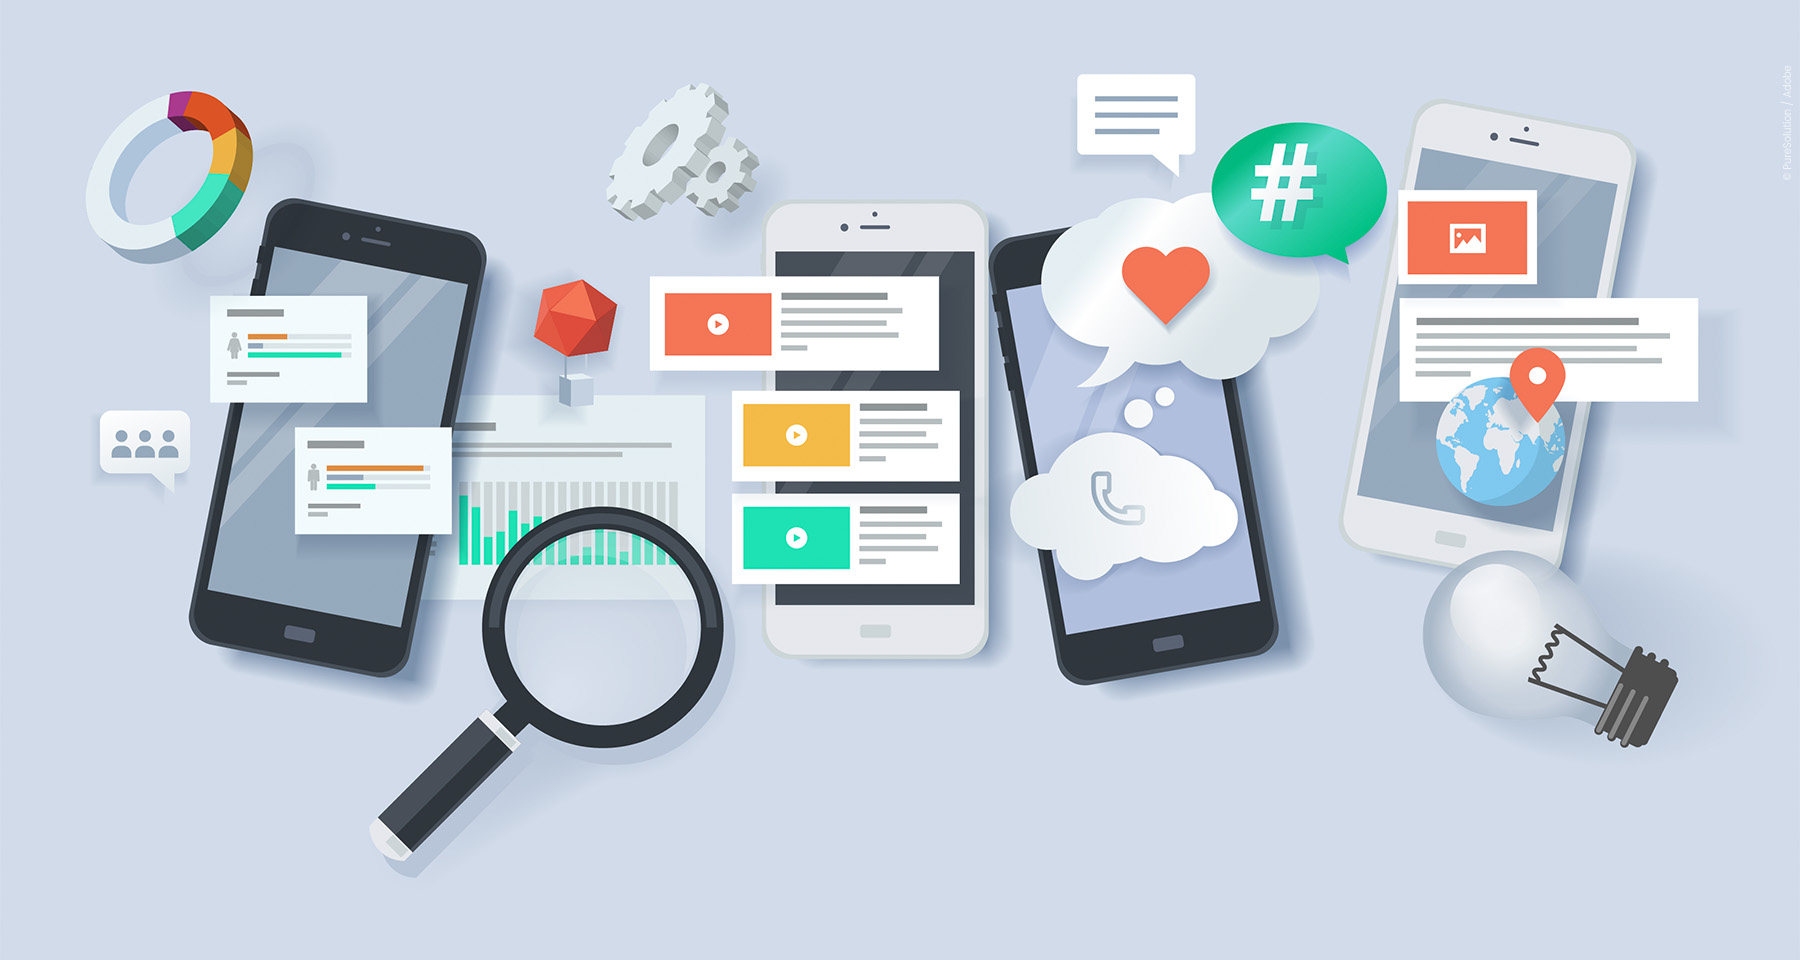 5 tips for launching, monetising mobile social media engagement